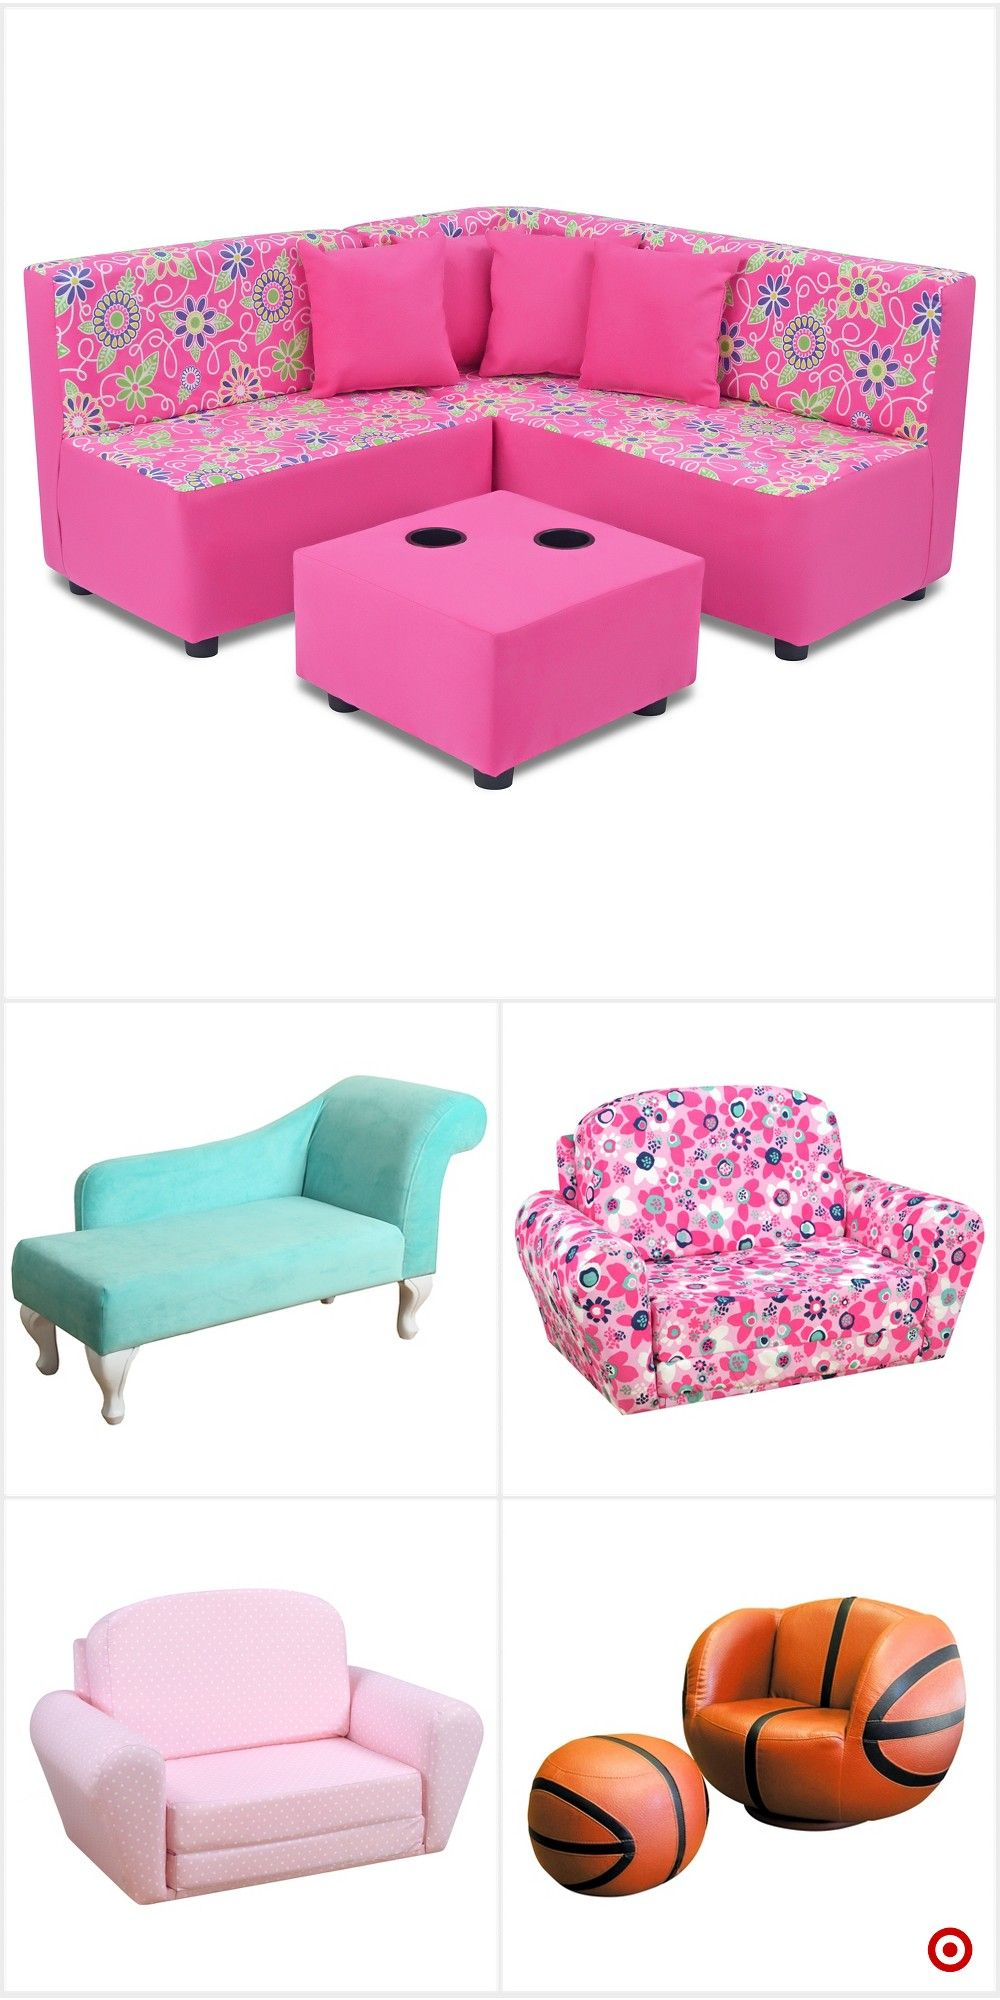 Shop Target For Kids Sofa You Will Love At Great Low Prices Free Shipping On Orders Of 35 Or Free Same Day Pick Up Kids Sofa Kids Couch Kids Furniture Sets